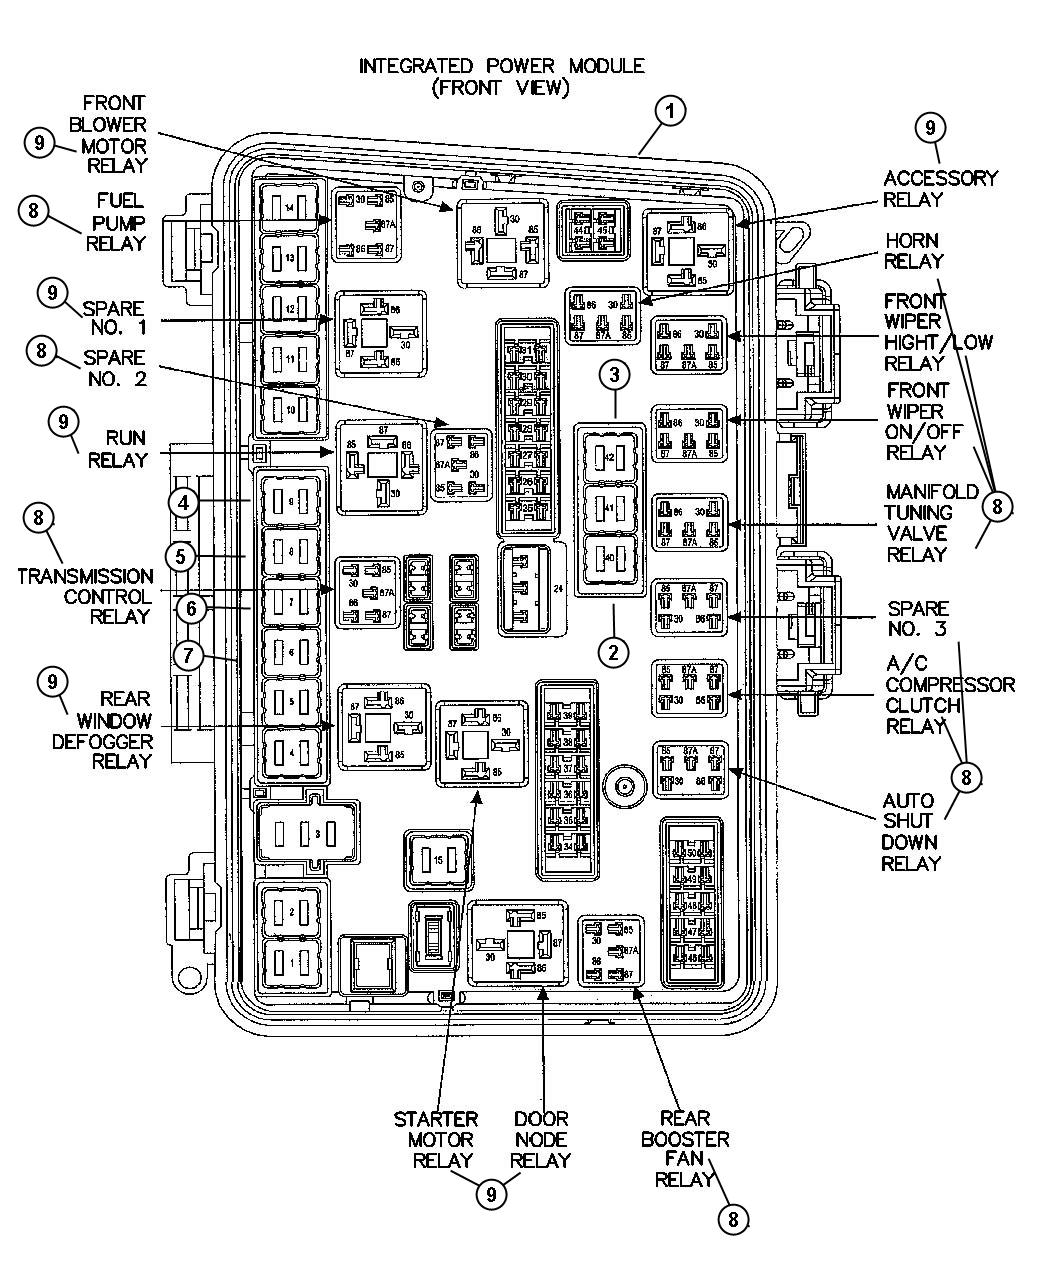 2000 Chrysler 300m Wiring Diagram Manual Of Amplifier 2001 Concorde Amp Jeep Grand Stereo